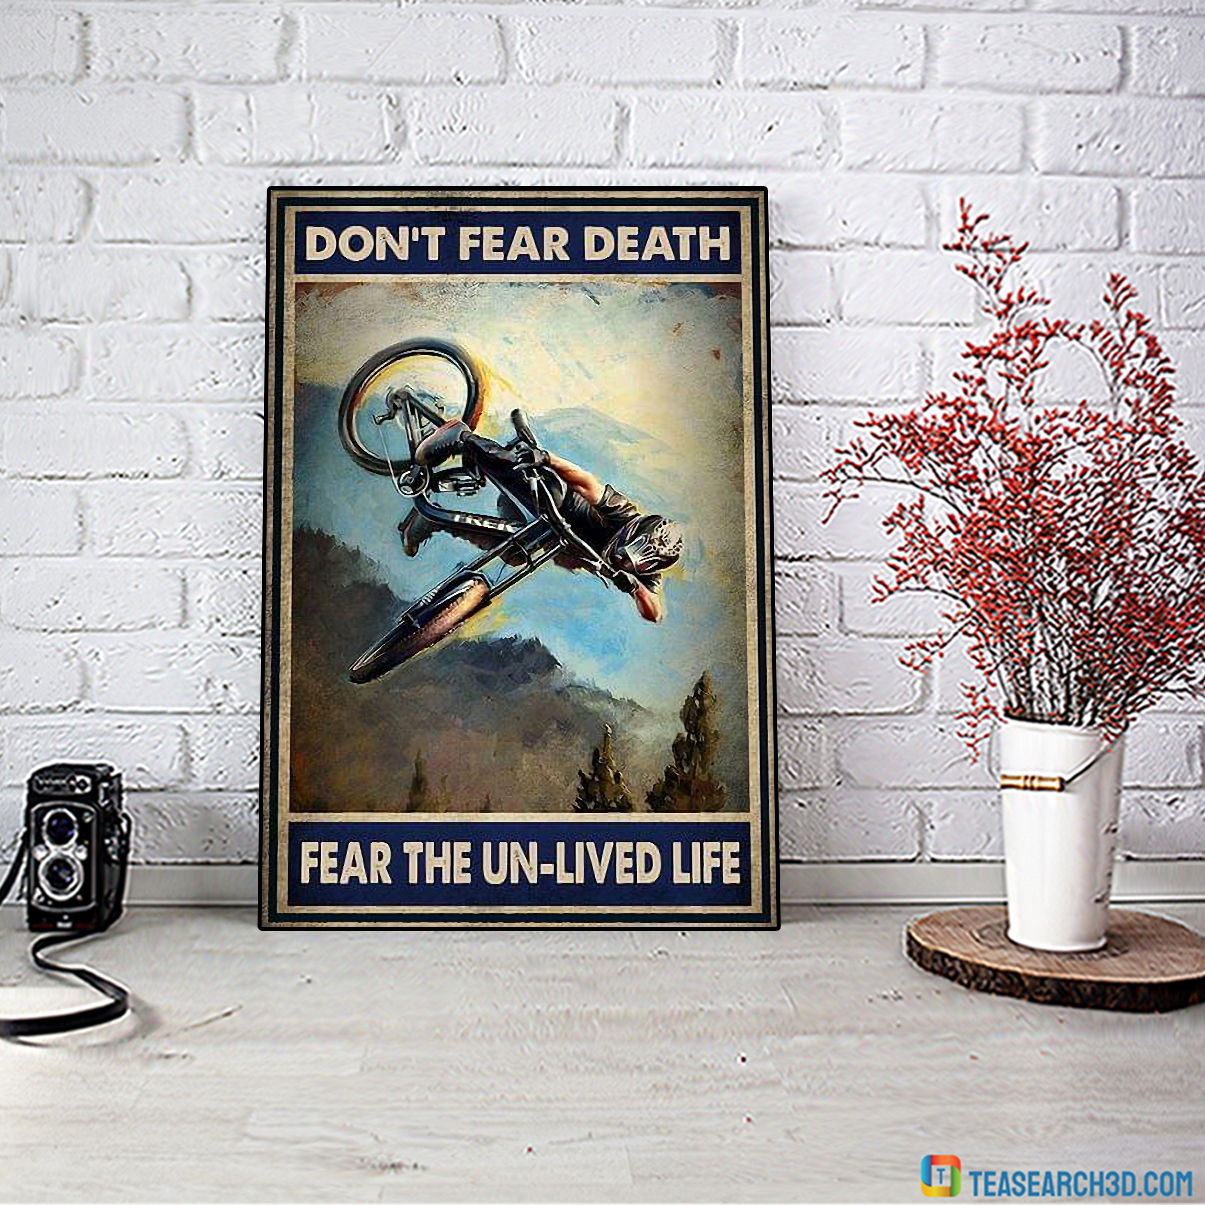 Mountain bike don't fear death fear the un-lived life poster A4